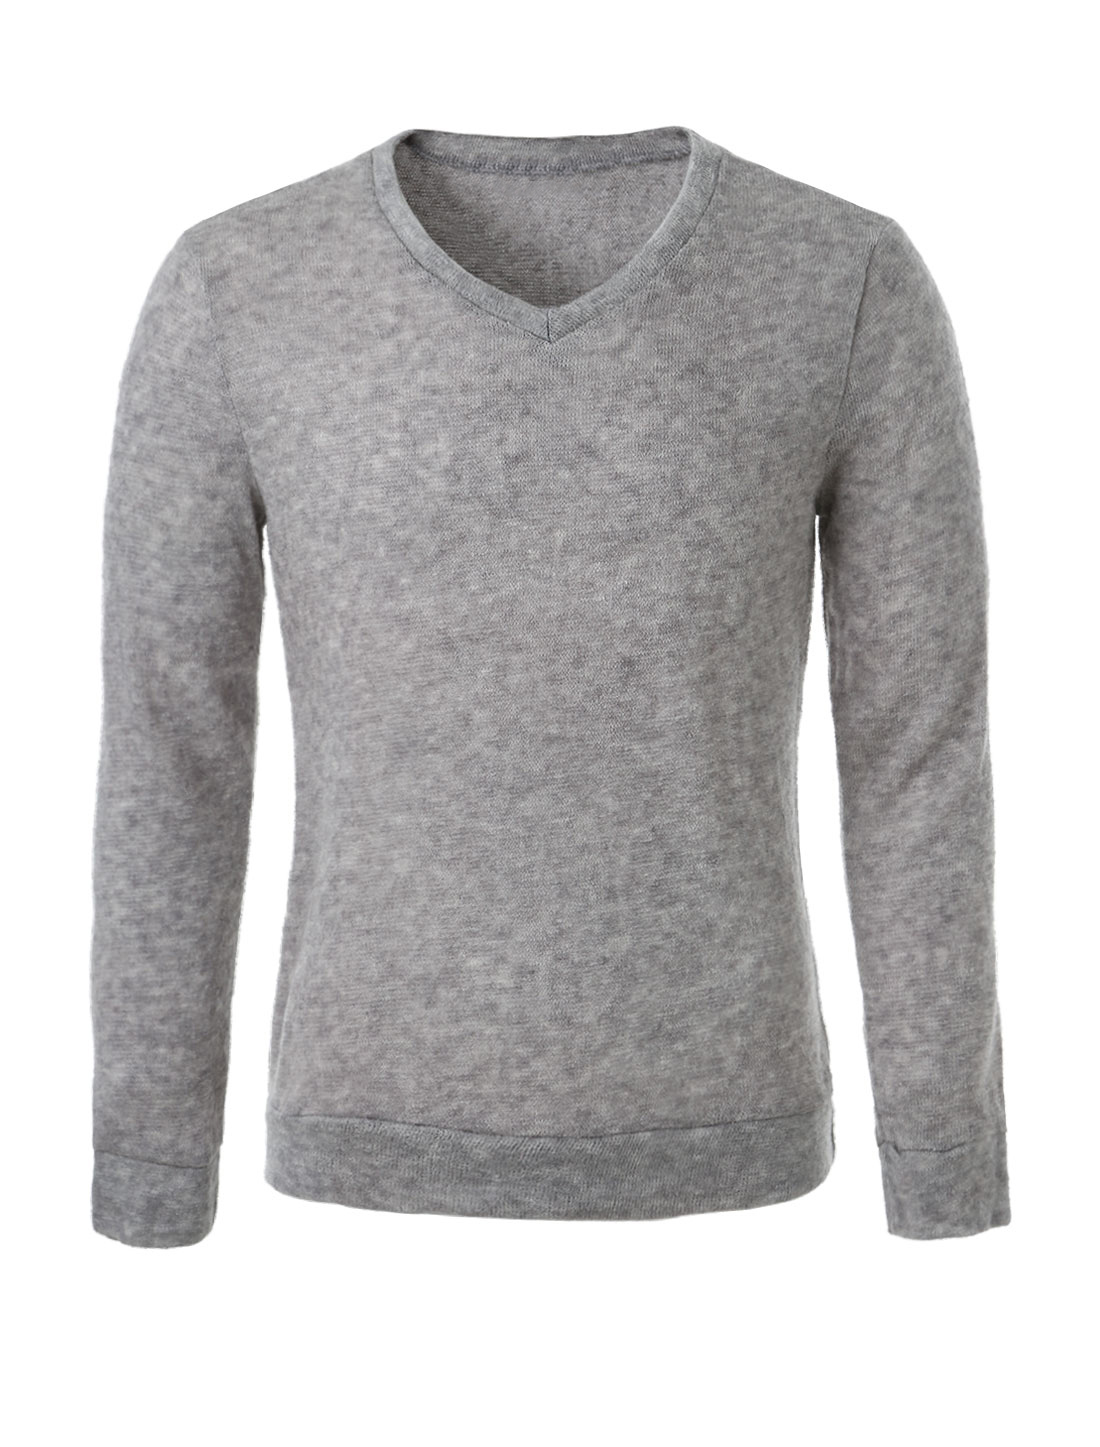 Men Trendy V Neck Pullover Fall Leisure Sweater Heather Gray M